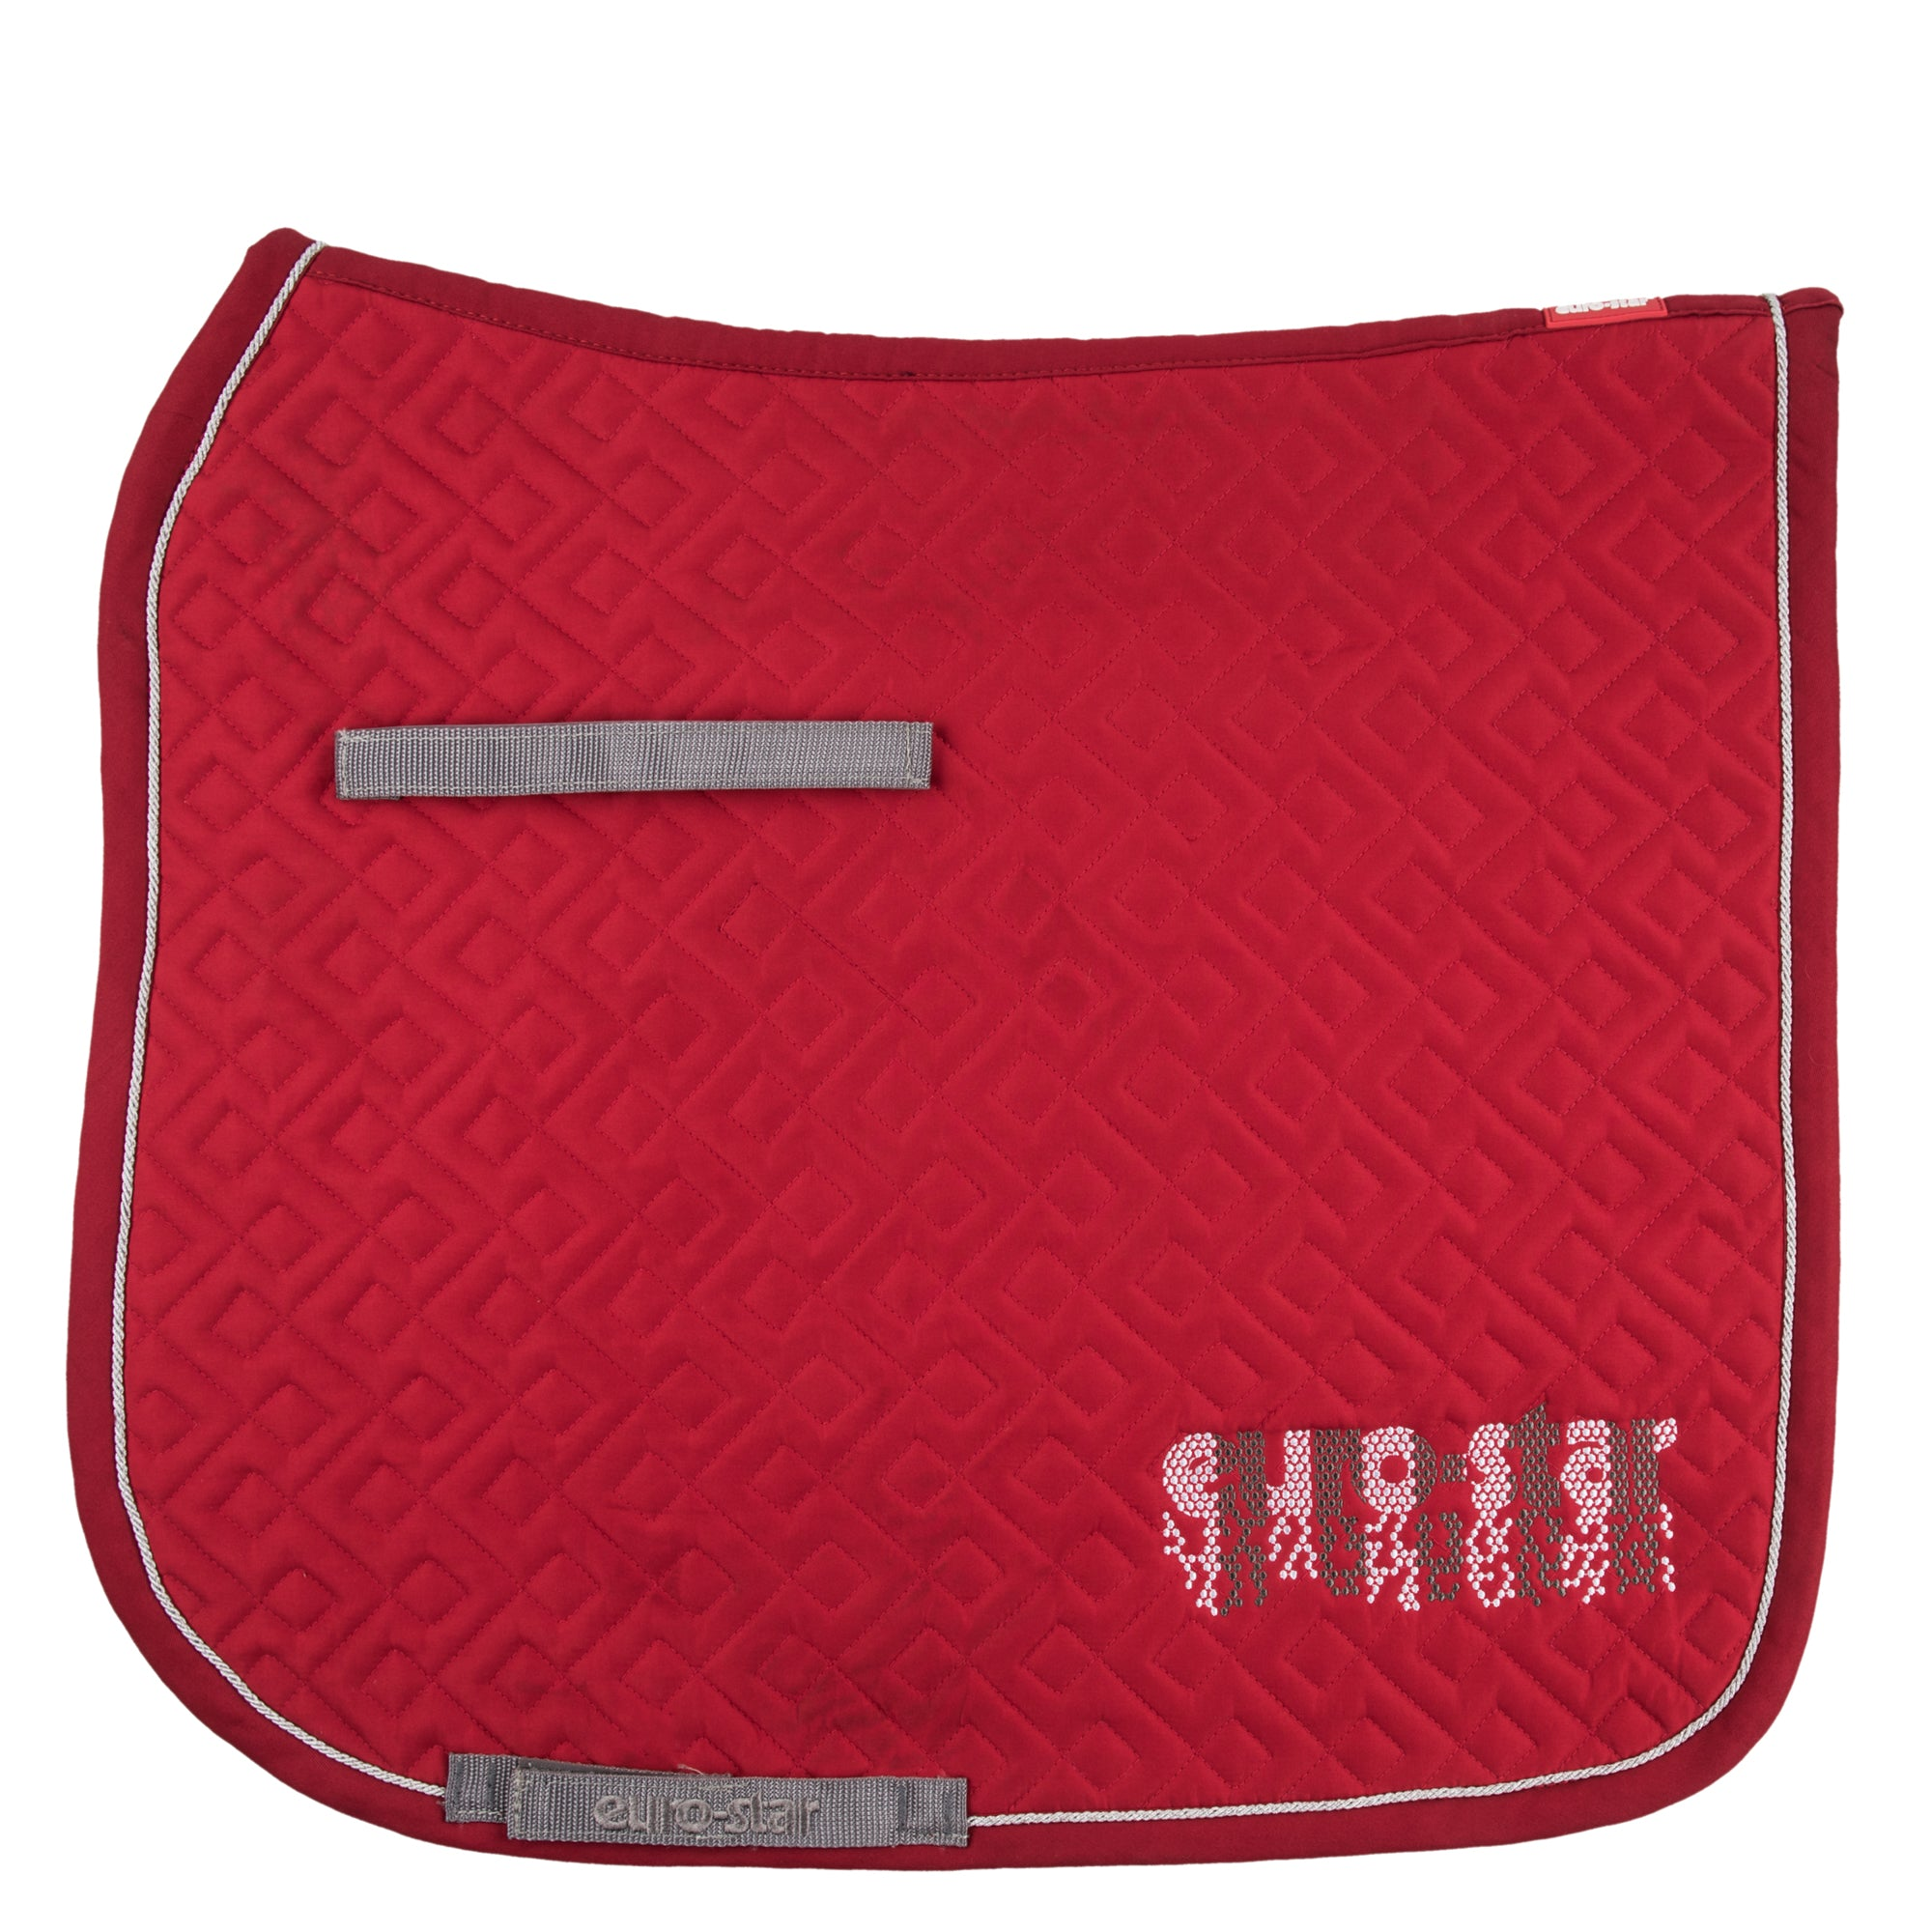 Euro-star AW17 Excellent Saddle Pad - Beaujolais - Dressage only - Divine Equestrian